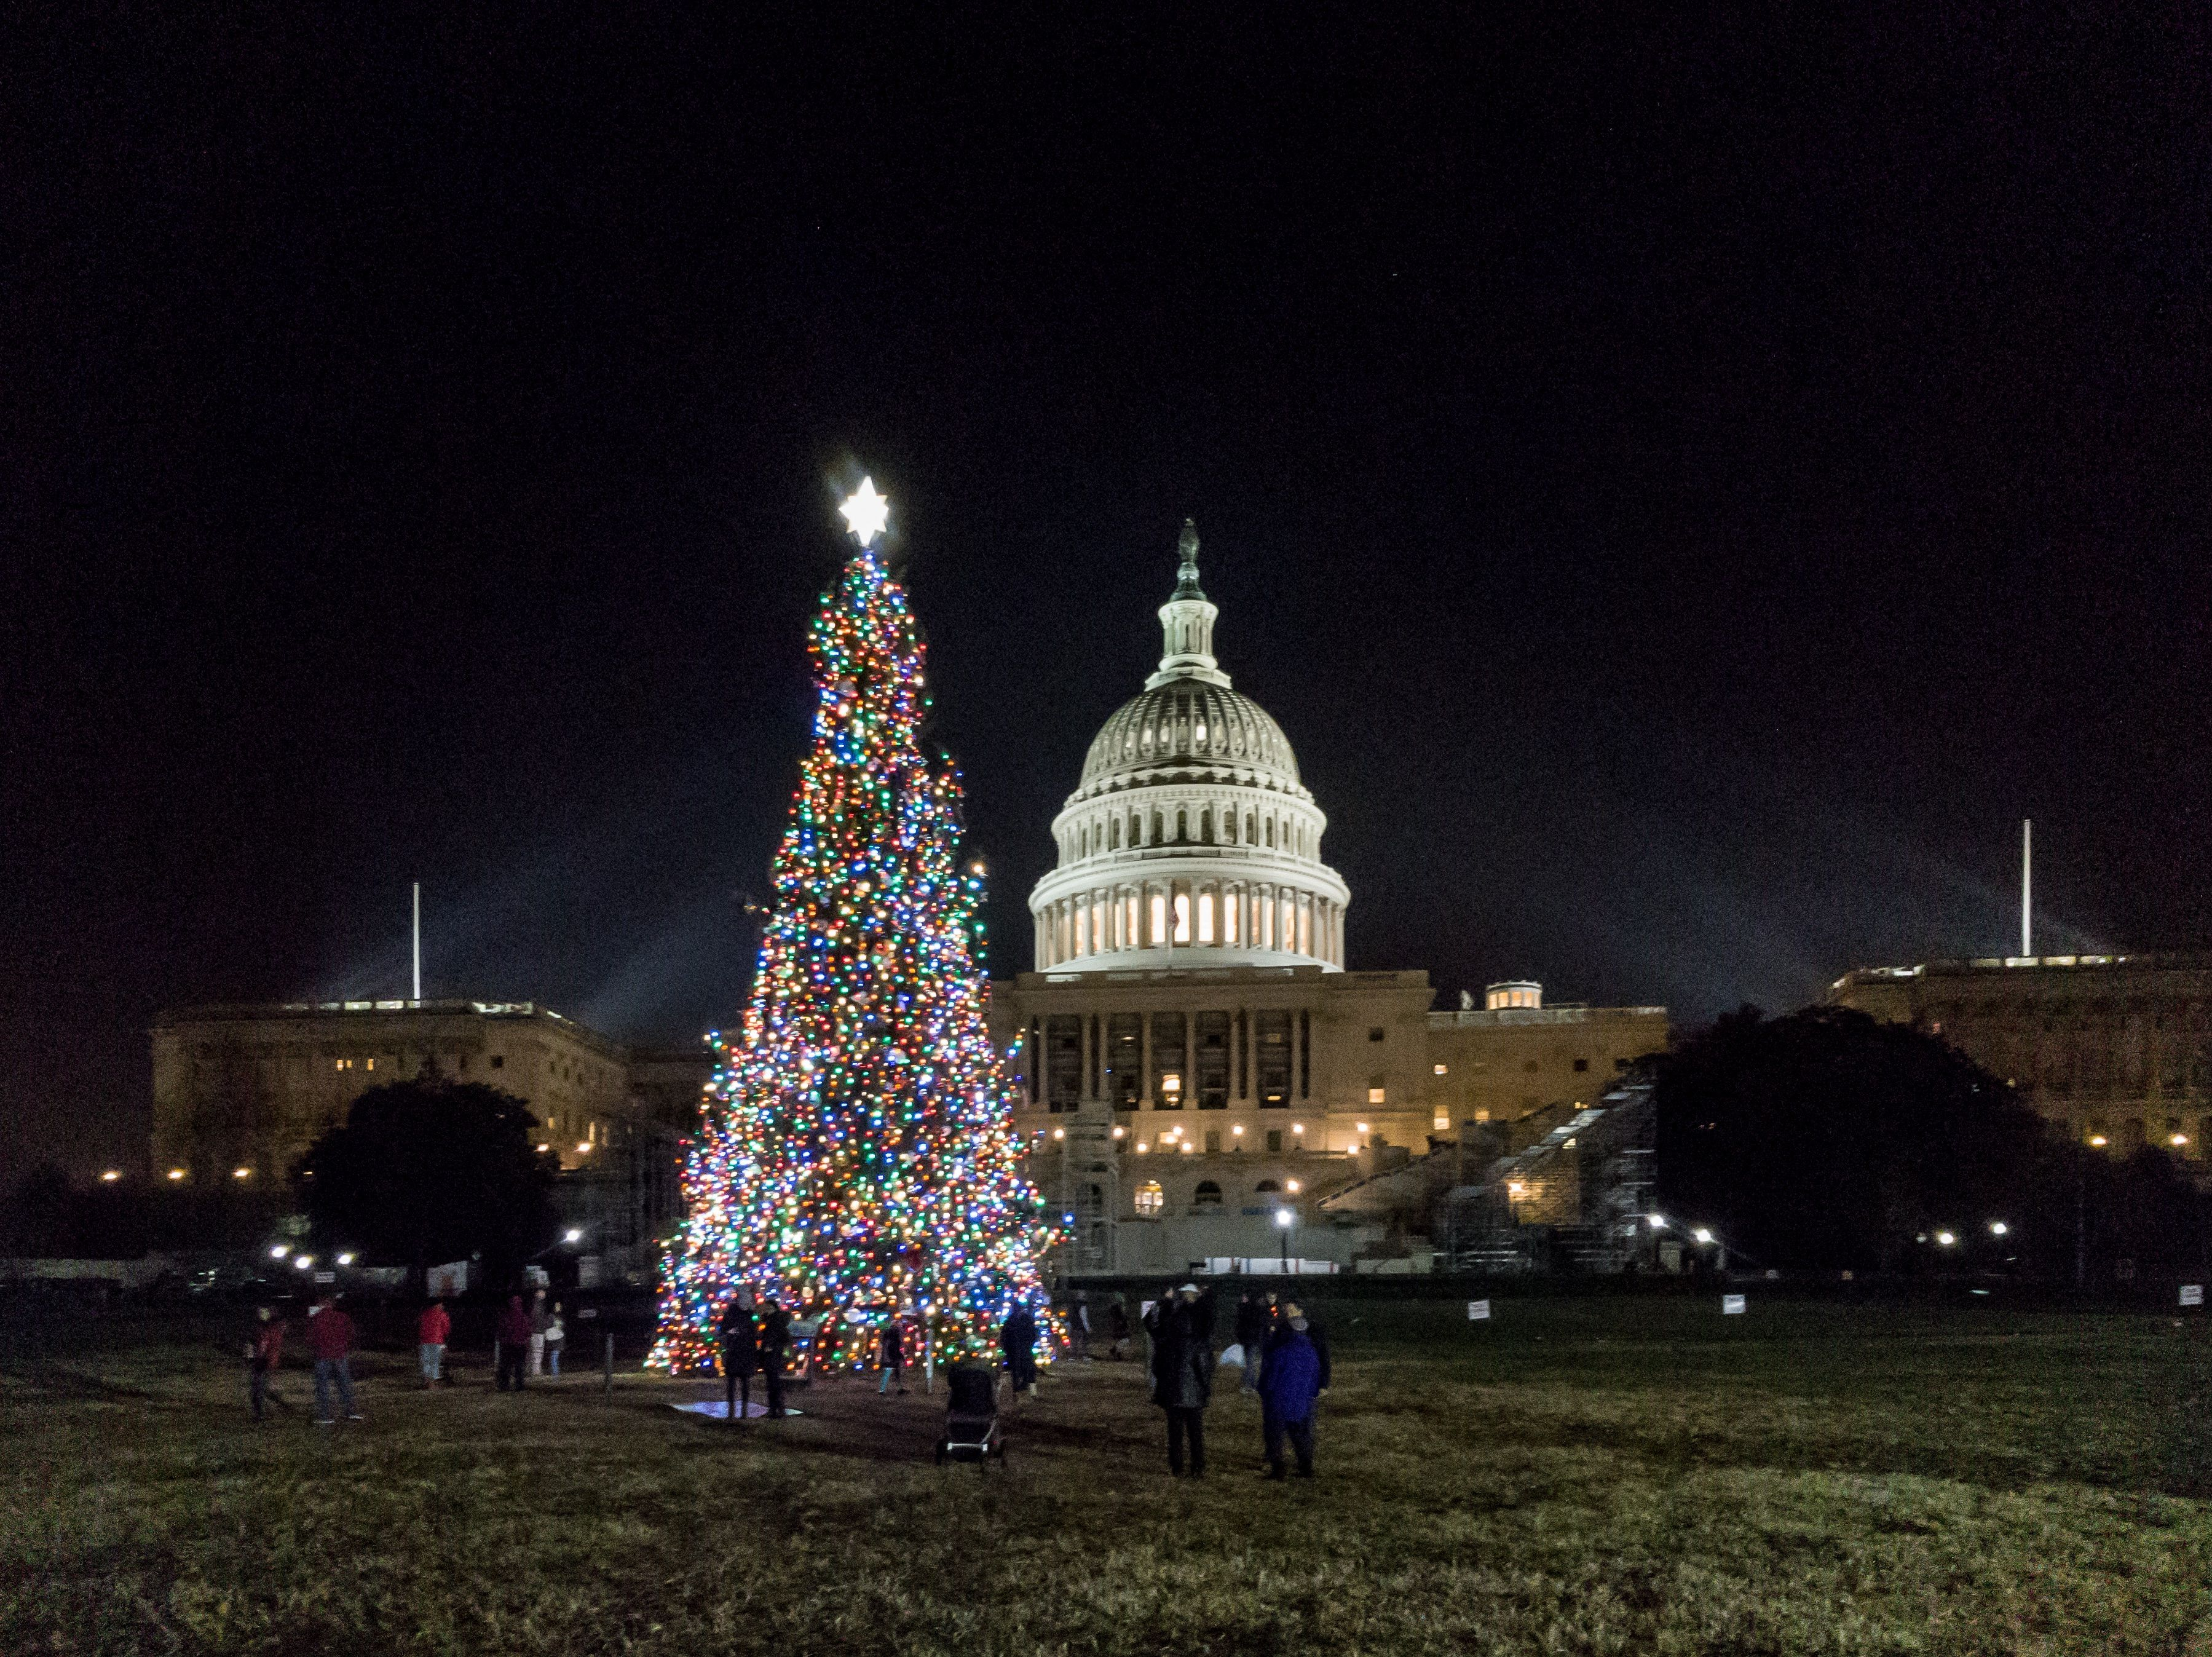 capitol christmas tree in front of the capitol in washington dc 2016 - Washington Dc Christmas Tree